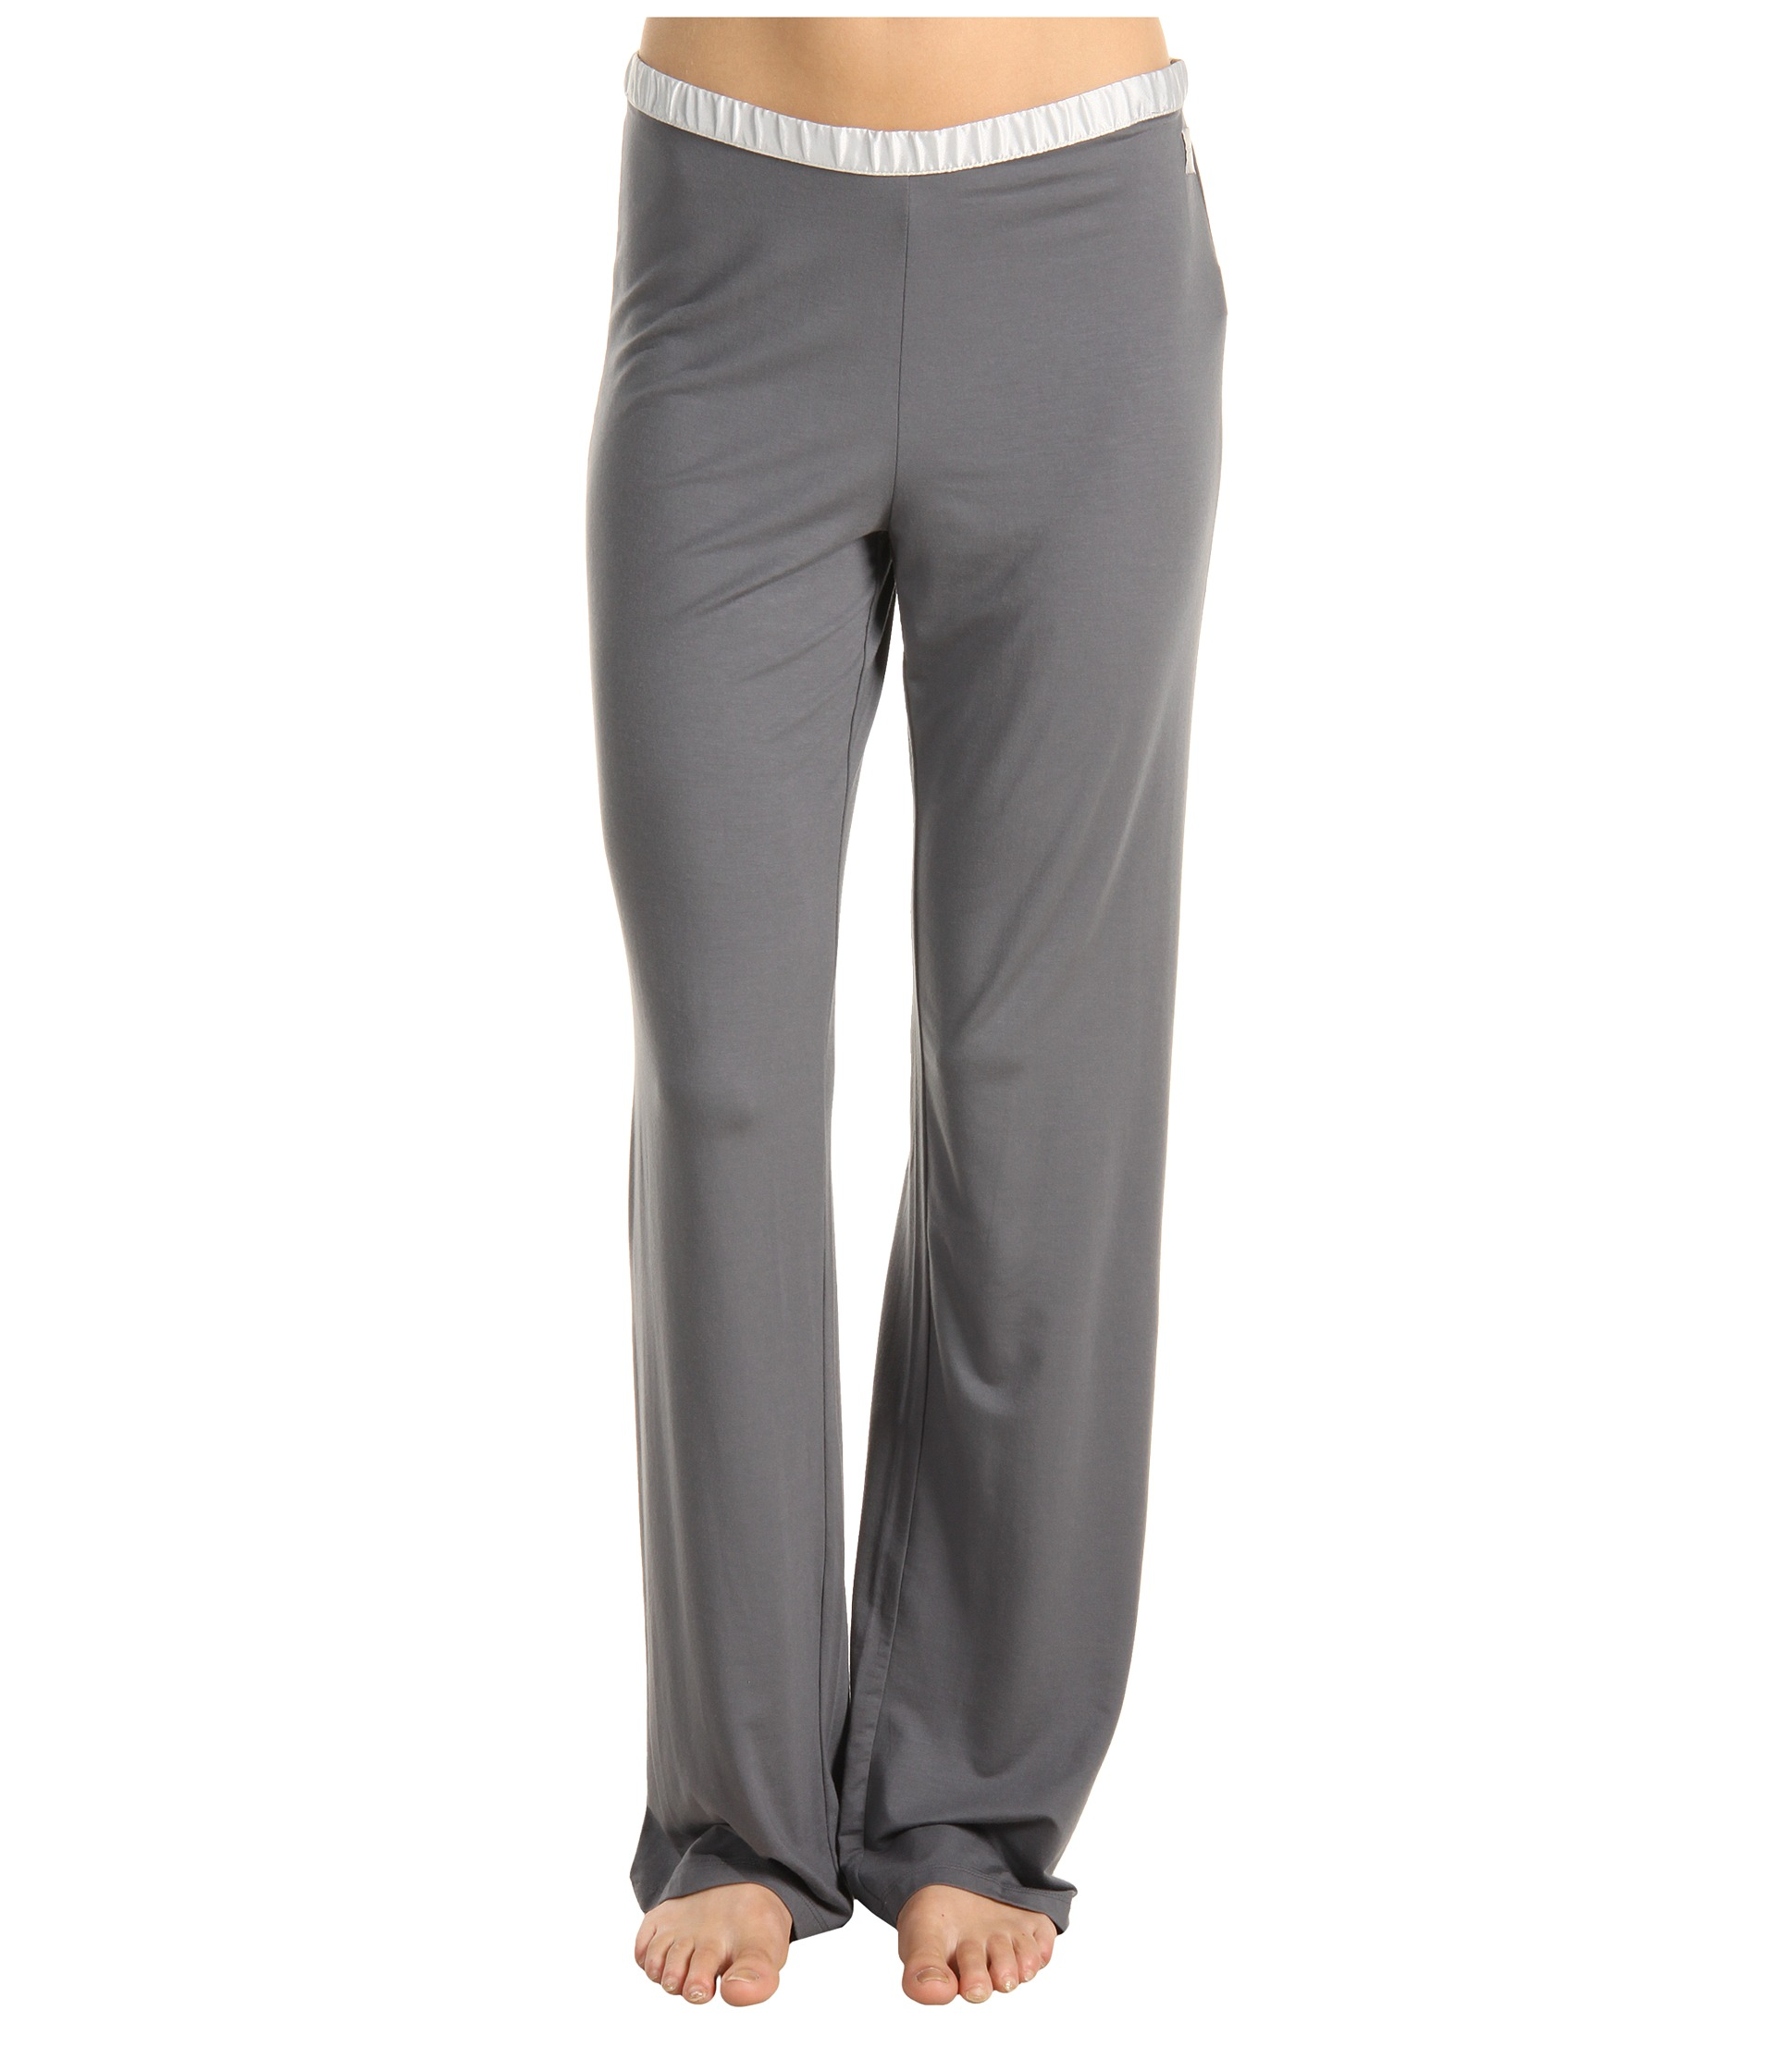 Lastest Here Is A Deal On Calvin Klein Pajama Pants Most Of These Are On Sale For Up To 50% Off, Plus There Is A Coupon Code You Can Use With Most Of Them To Save 25% Just Use Coupon Code 25OFFWNTR At Checkout